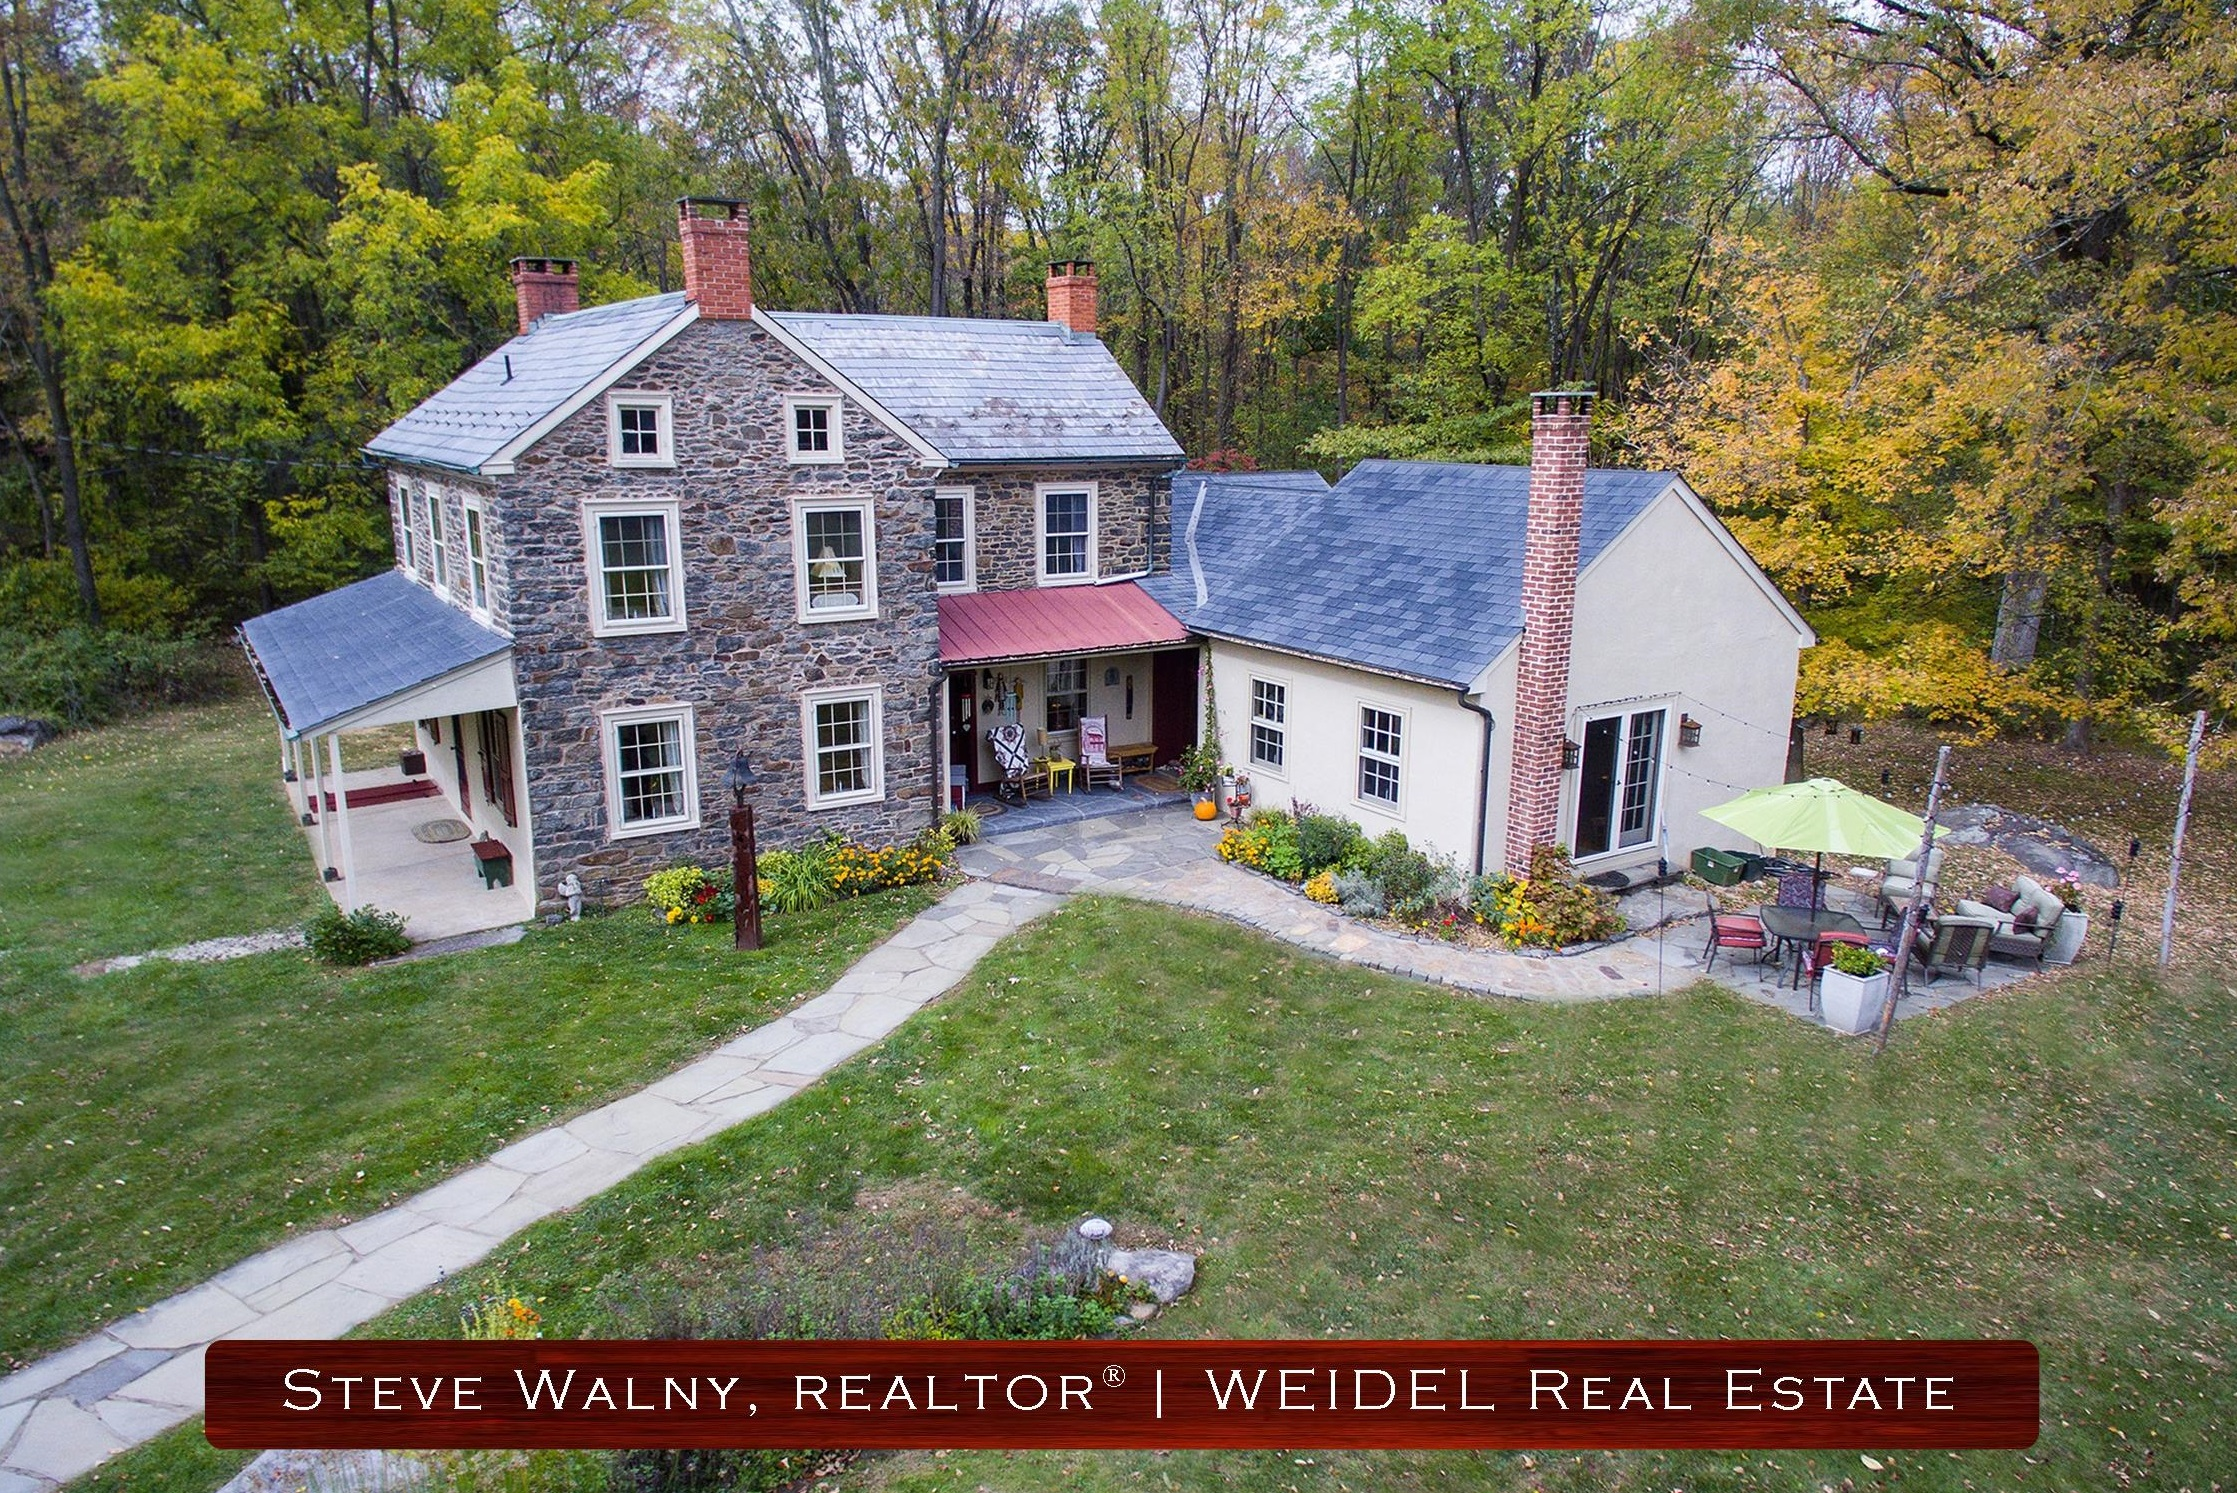 Stone Farm House for Sale Bucks County PA | #StoneFarmHouseBucksCounty | Stone Horse Farm Bucks County | #StoneHorseFarmBucksCounty